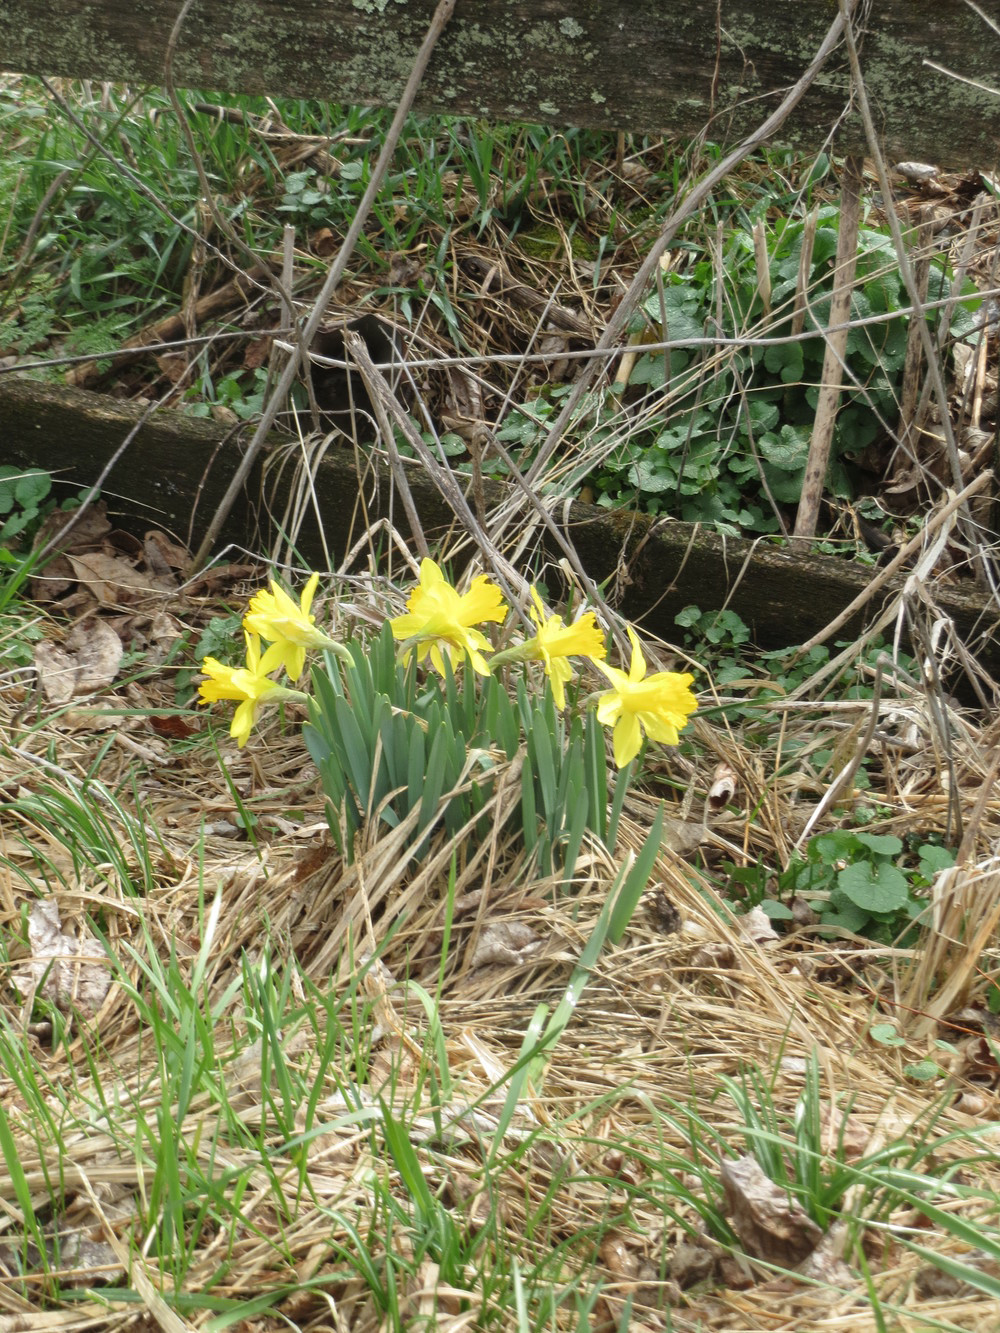 THE TRIUMPH OF APRIL: ... A FERAL DAFFODIL AGAINST AN OLD FENCE,  ... A SWOLLEN CREEK, ... and legs of lamb!